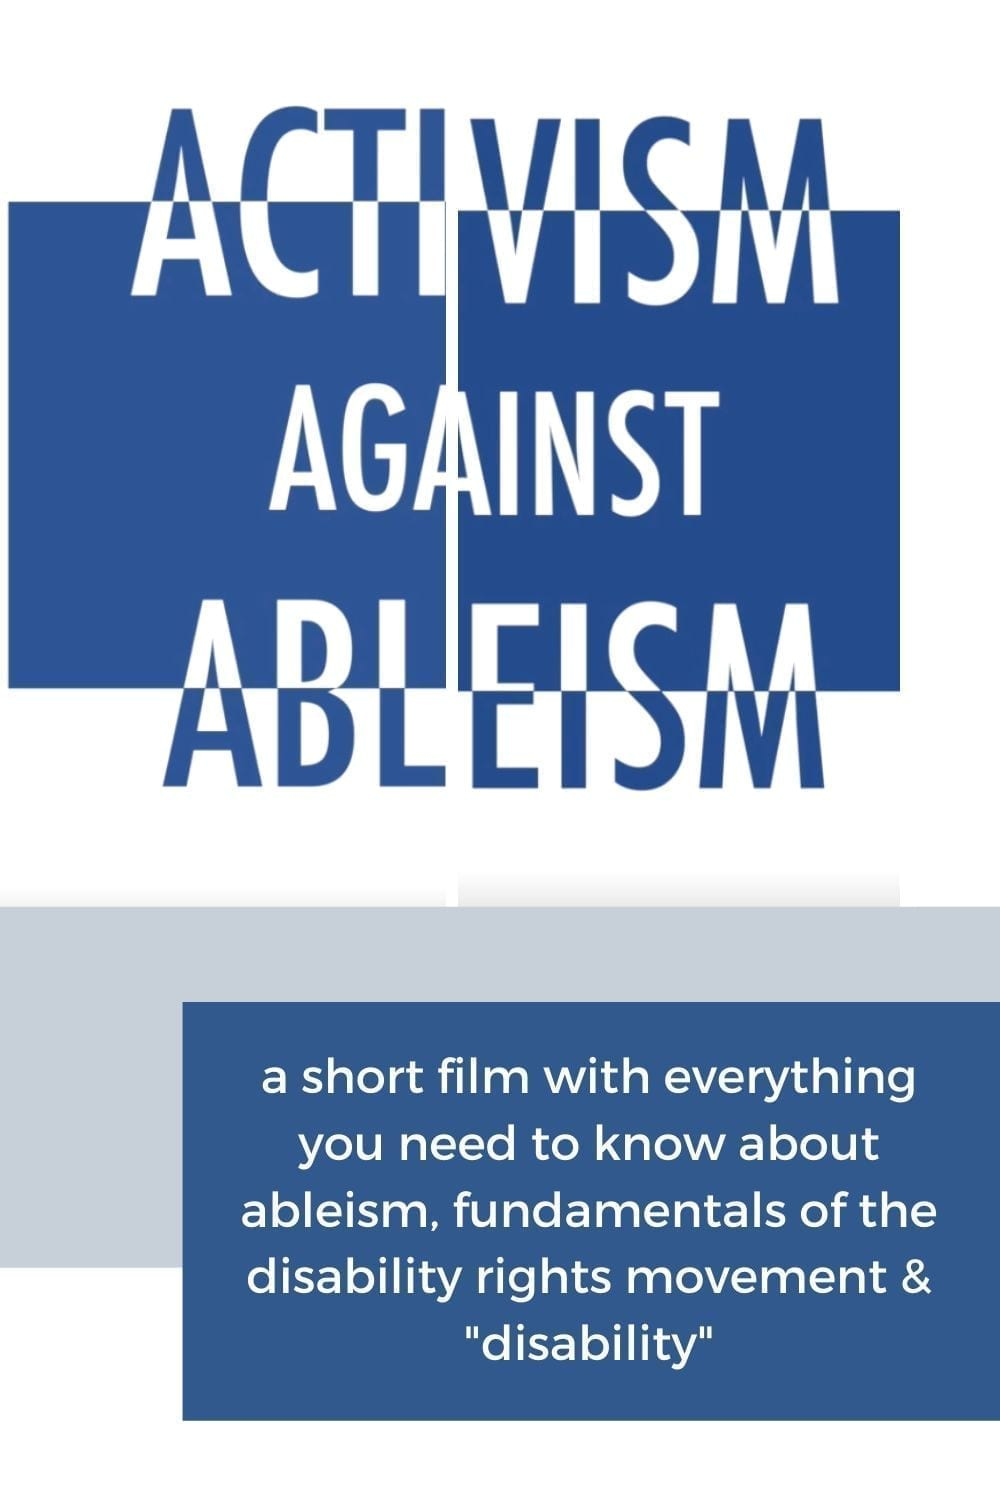 "Activism Against Ableism: a short film with everything you need to know. [Image Description: white background with a navy blue square divided in two, with large text reading ""Activism Against Ableism"" - the text has been divided in two and the pieced back together, and the text is half in white and half in navy blue]"